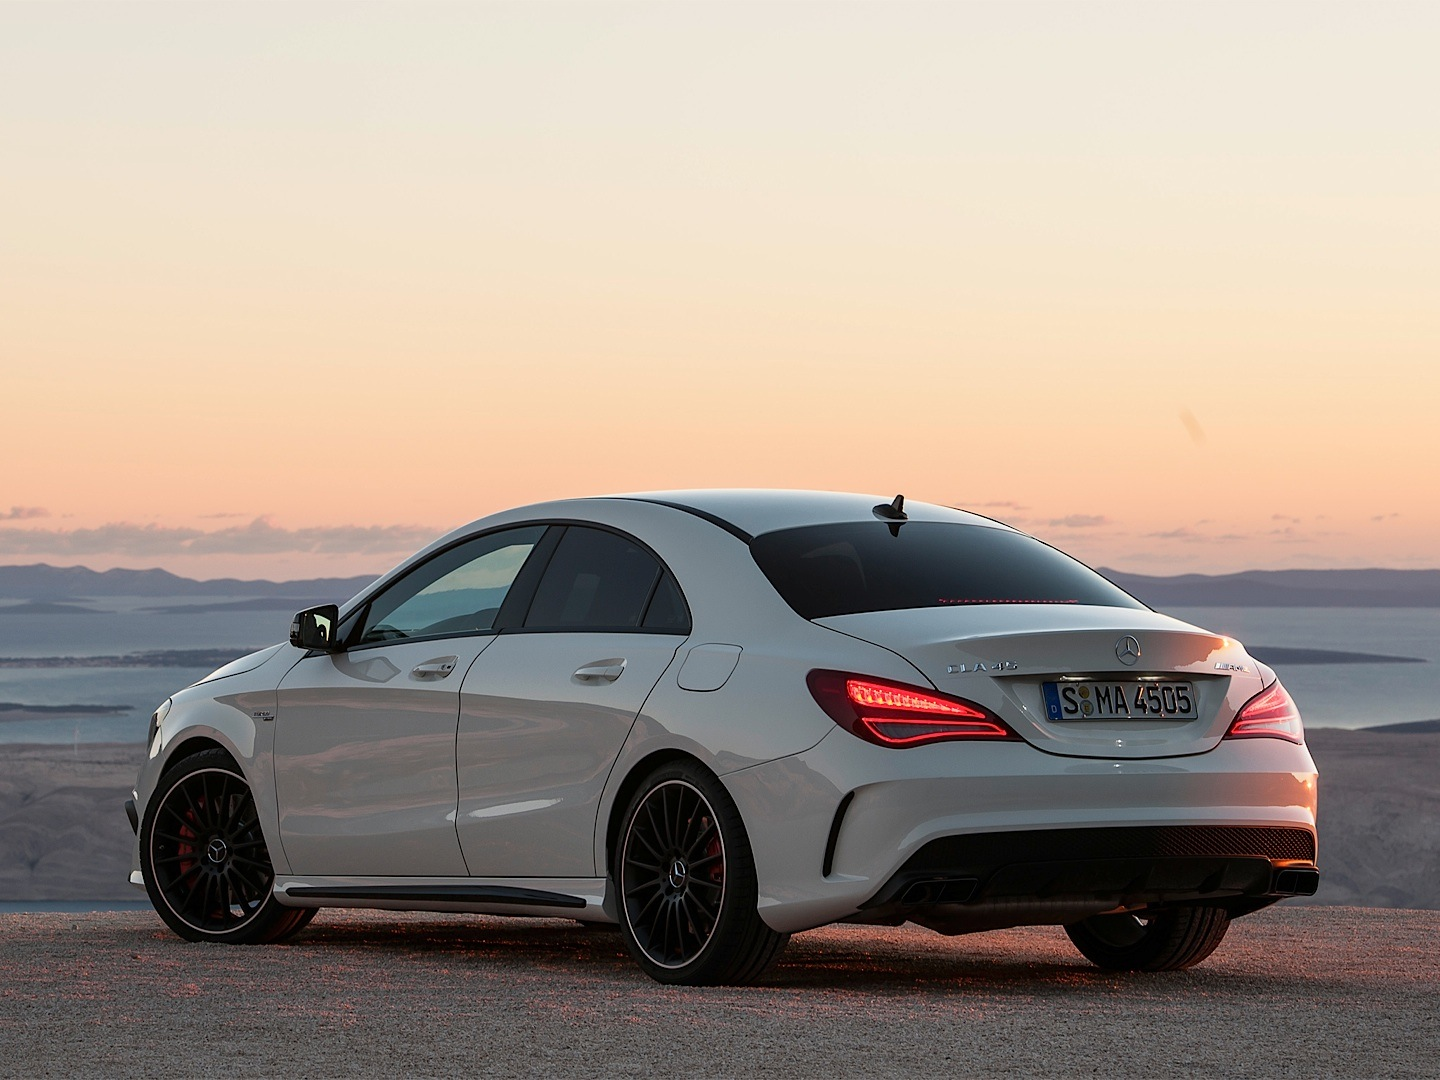 Cla 45 amg gets reviewed by iol motoring autoevolution for Mercedes benz cla 350